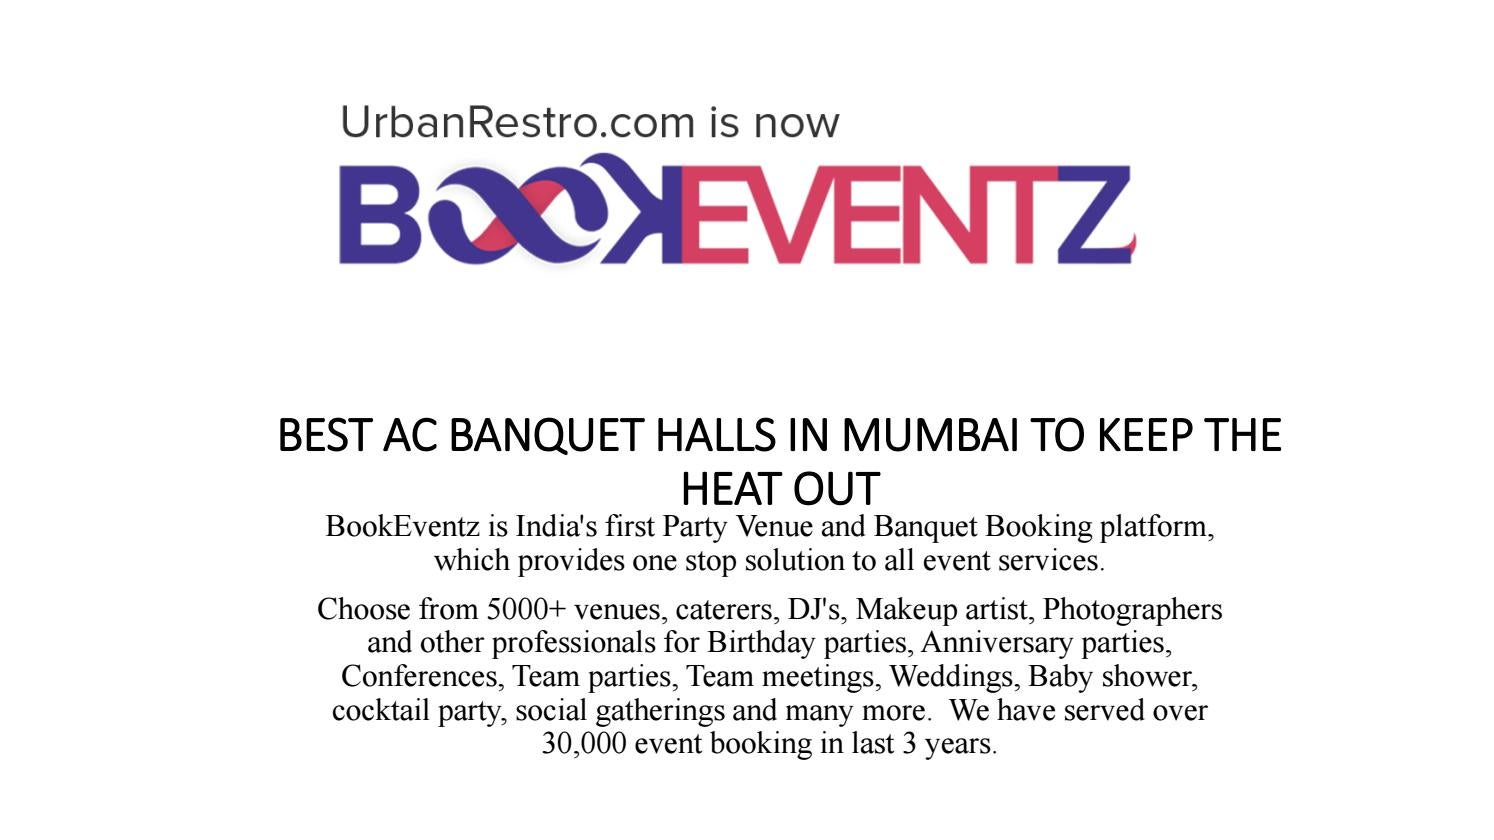 Complete cocktail party planning ideas bookeventz - Top 5 Wedding Venues In Bandra To Have An Over The Top Wedding By Kaizad Katgara Issuu